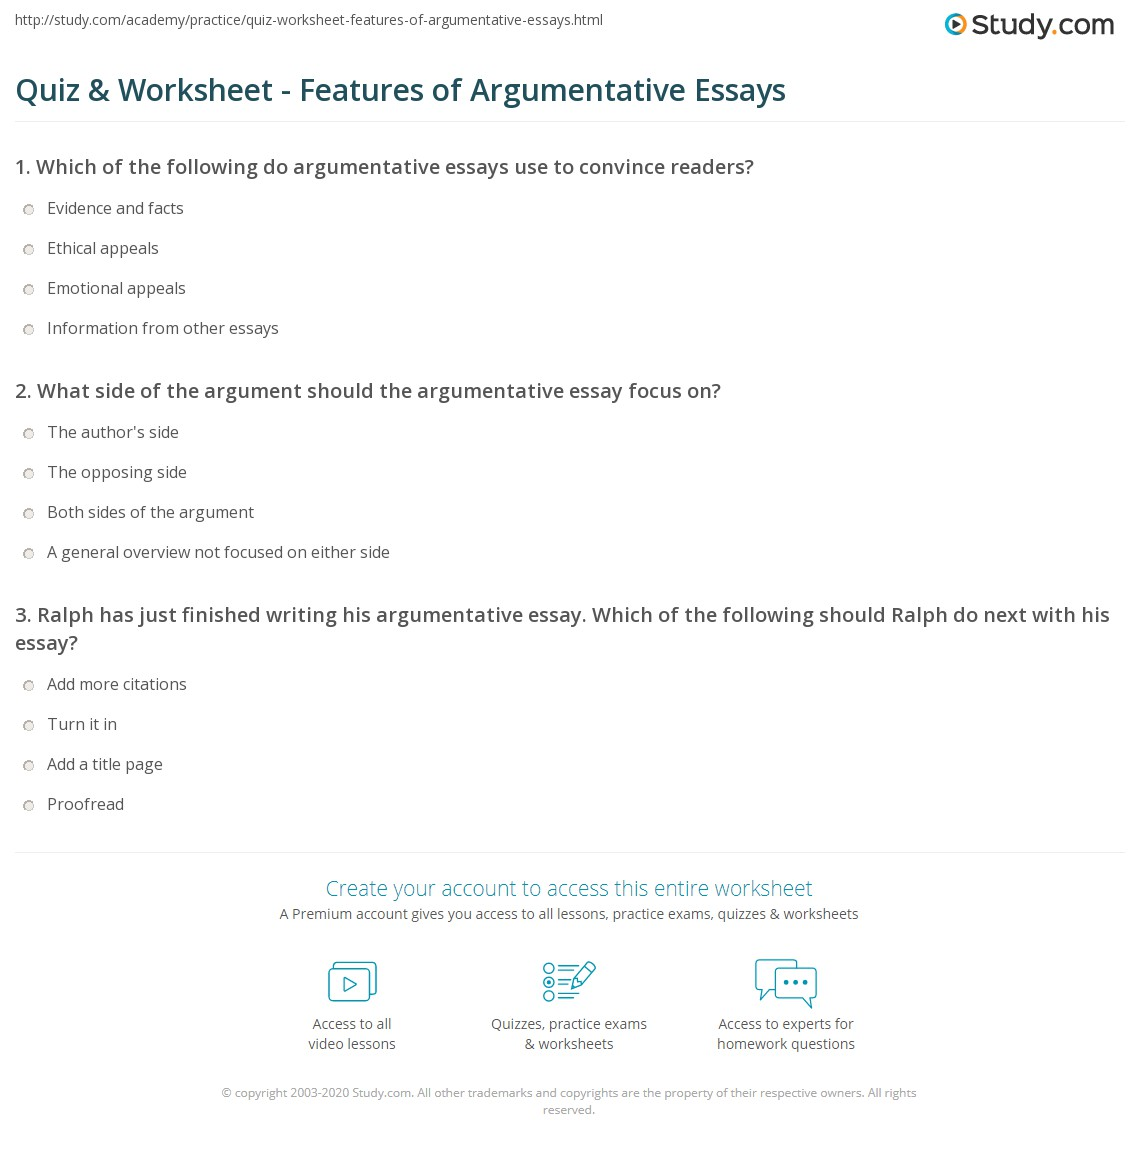 quiz worksheet features of argumentative essays com what side of the argument should the argumentative essay focus on